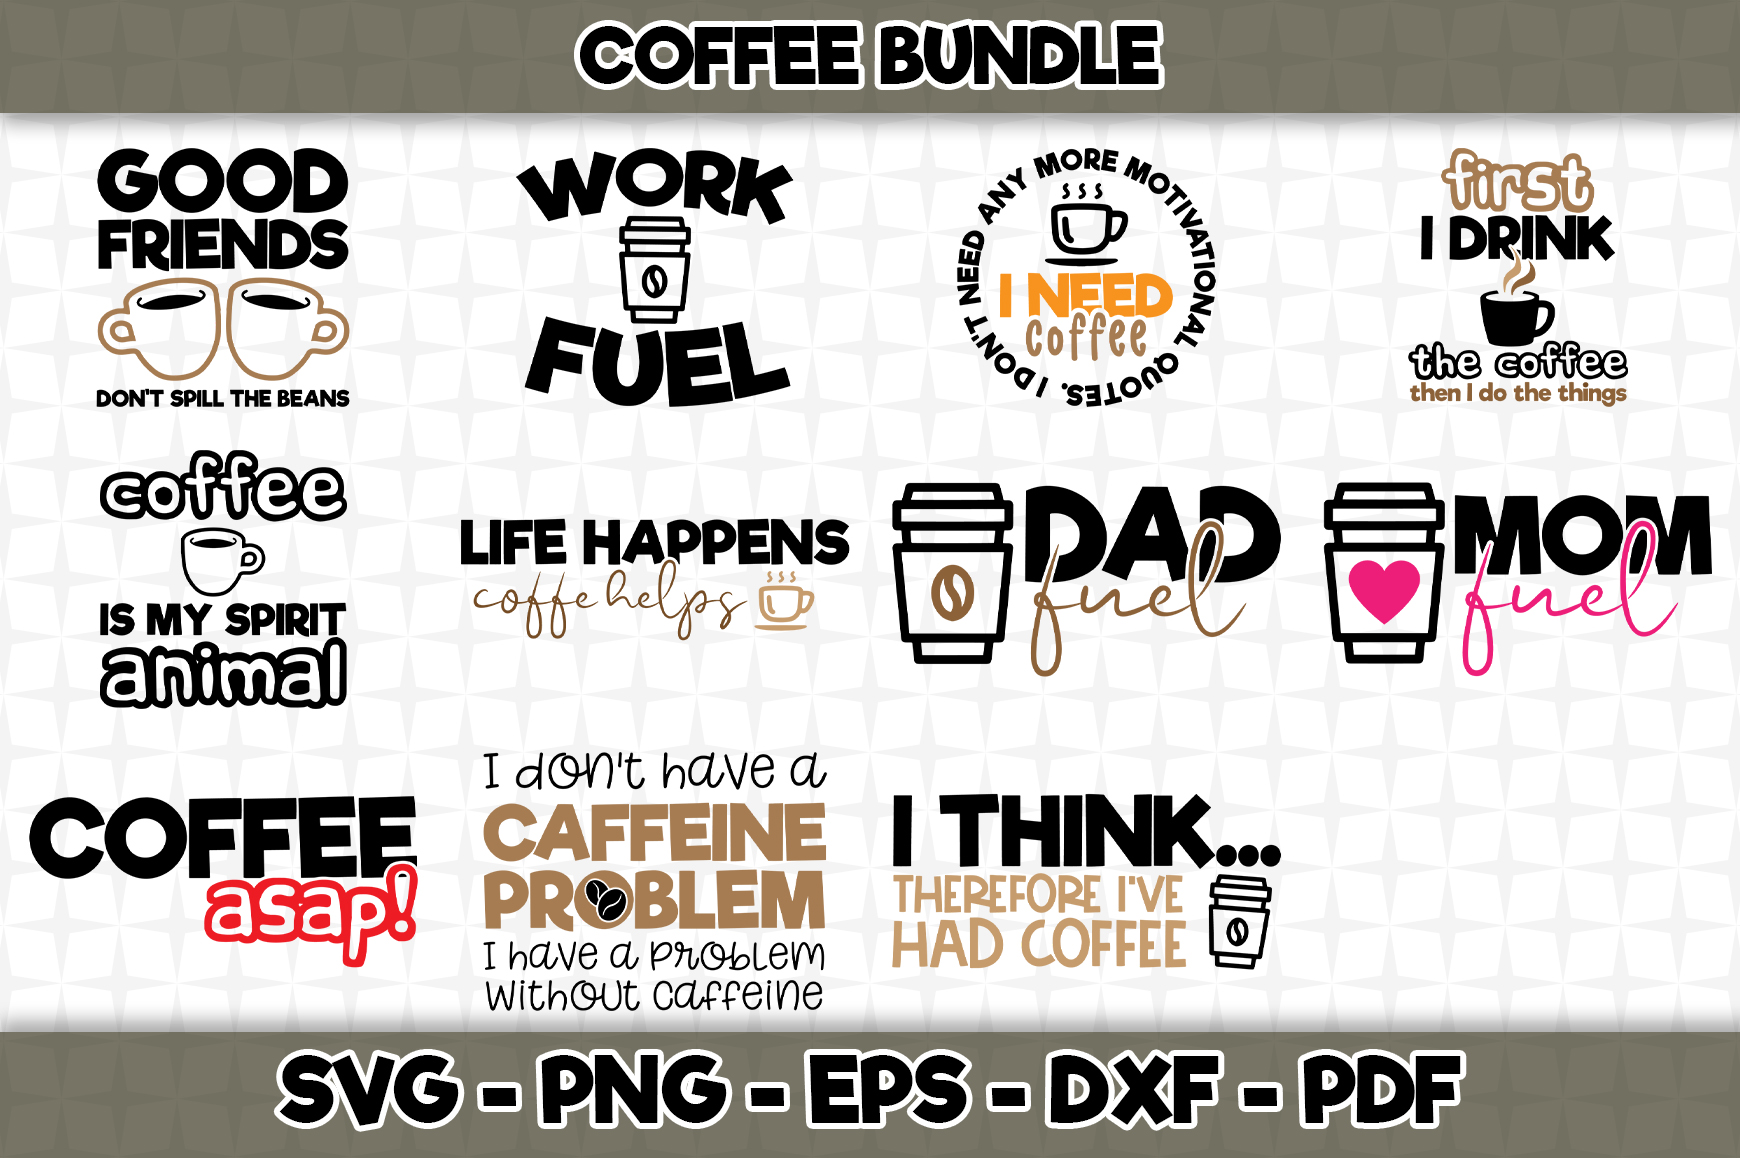 Download Free Coffee Bundle Graphic By Svgexpress Creative Fabrica for Cricut Explore, Silhouette and other cutting machines.